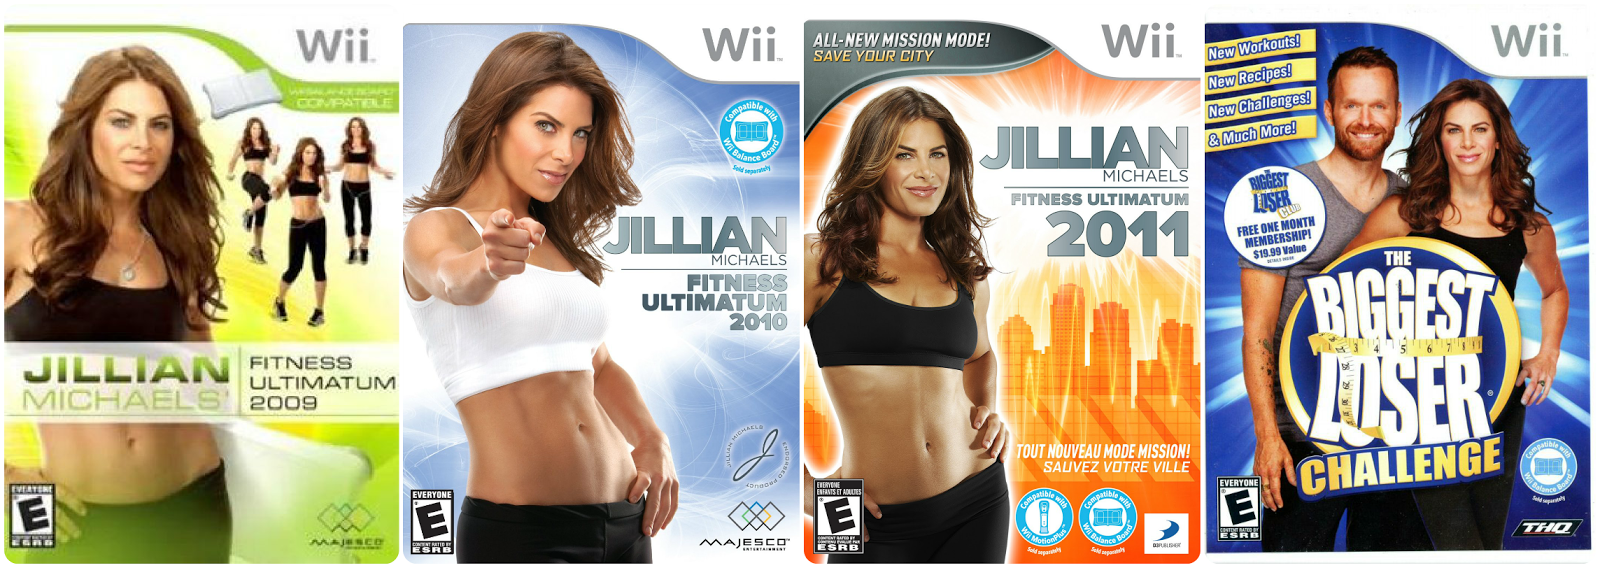 Jillian Michaels games for Wii  / L-vi.com